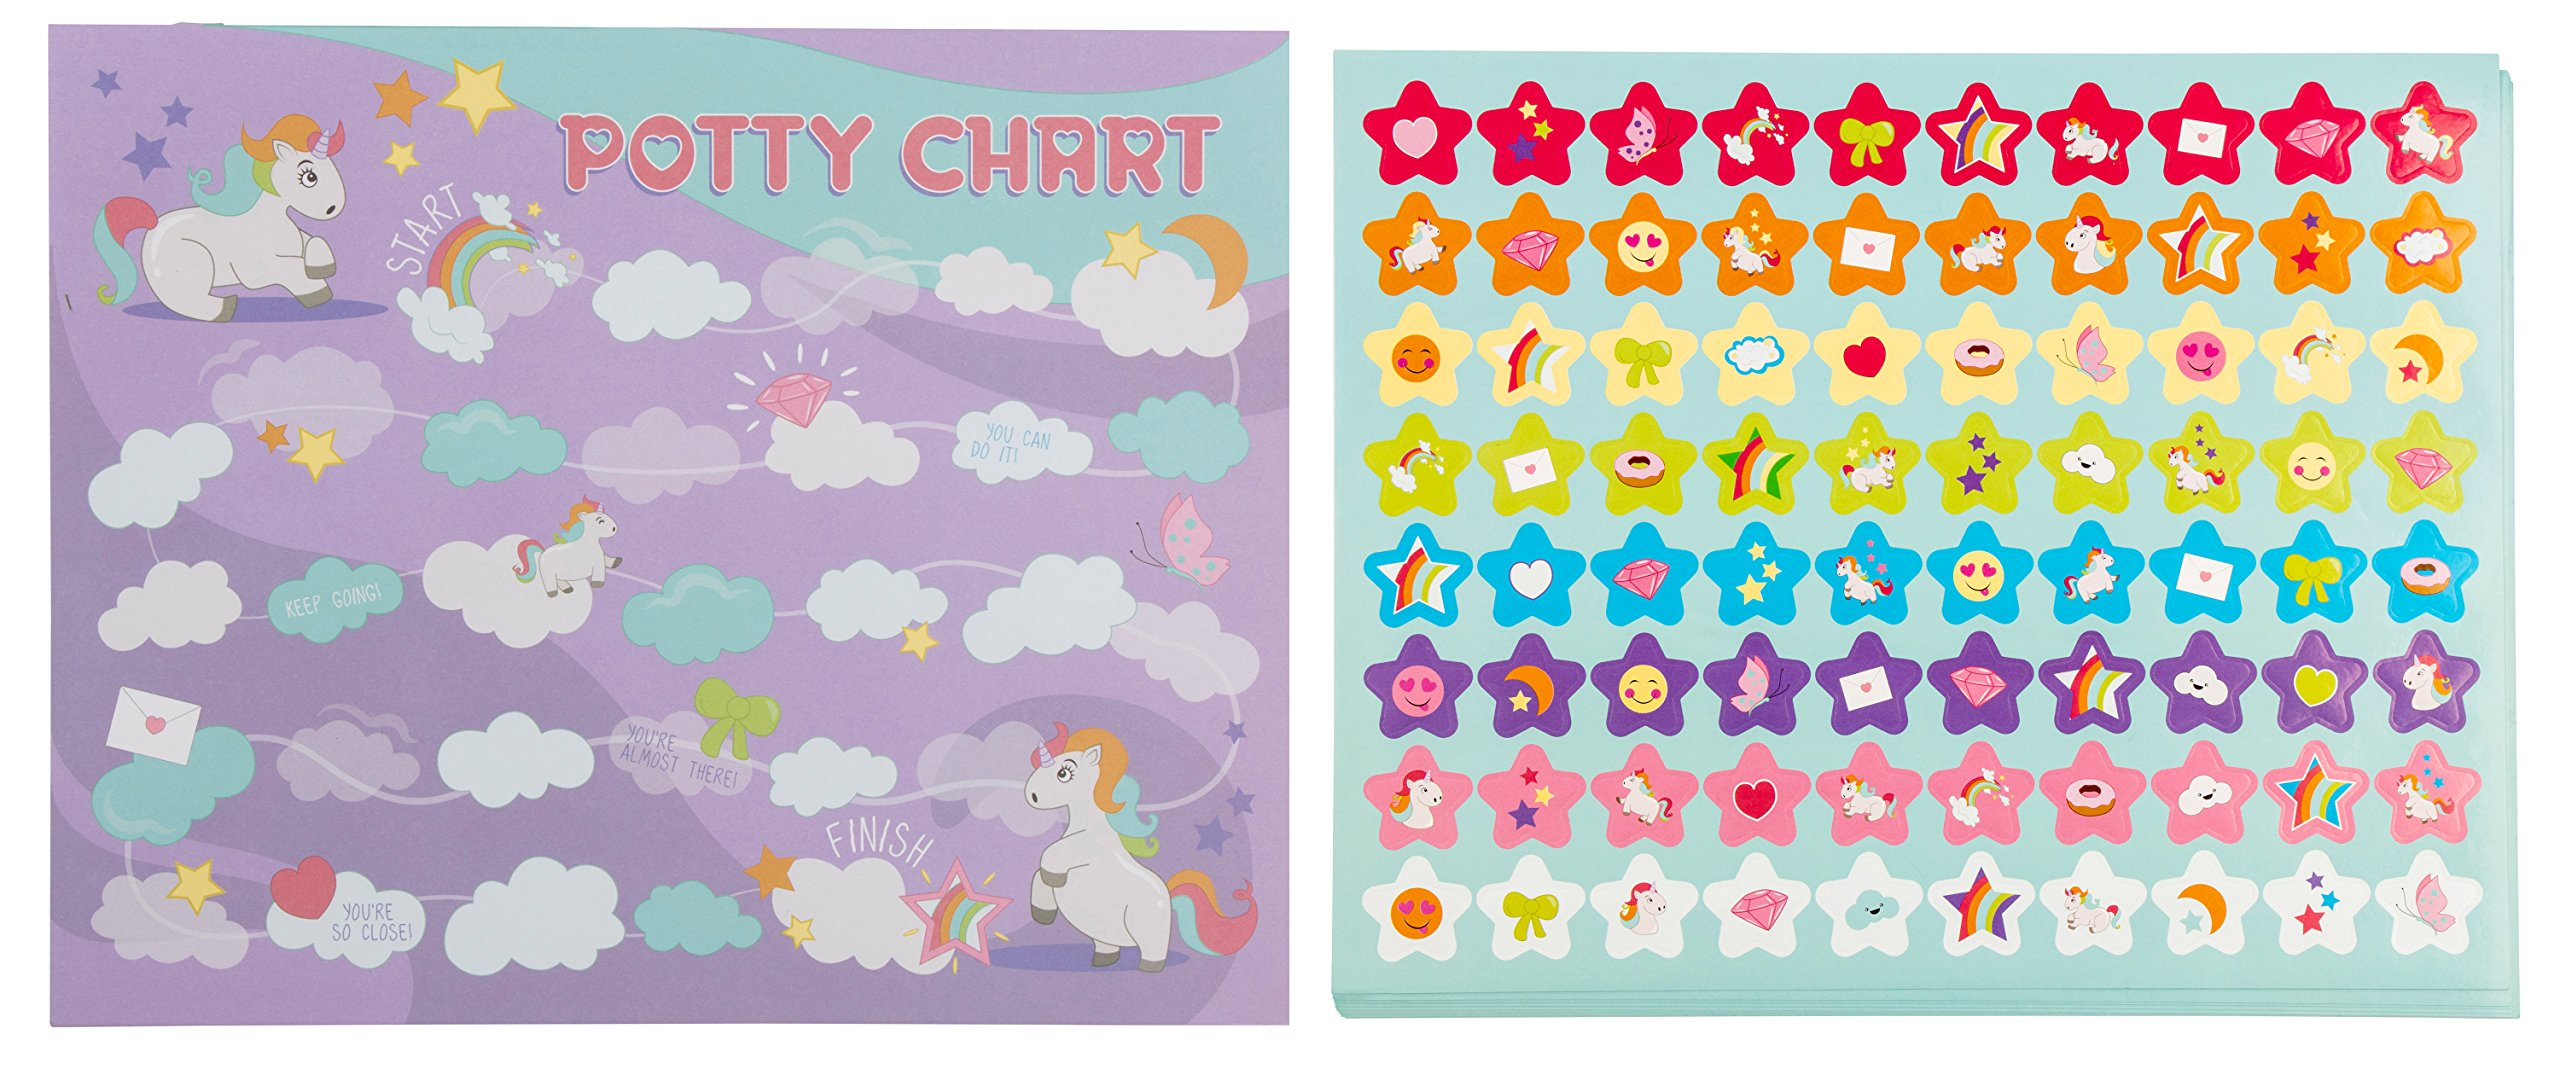 Blue Panda Potty Training Reward Chart - Pack of 50 Sheets and 800 Stickers, Cute Colorful Unicorn Themed Toilet Training Kit for Girls, Motivational and Positive Reinforcement, 10.3 x 8.3 inches